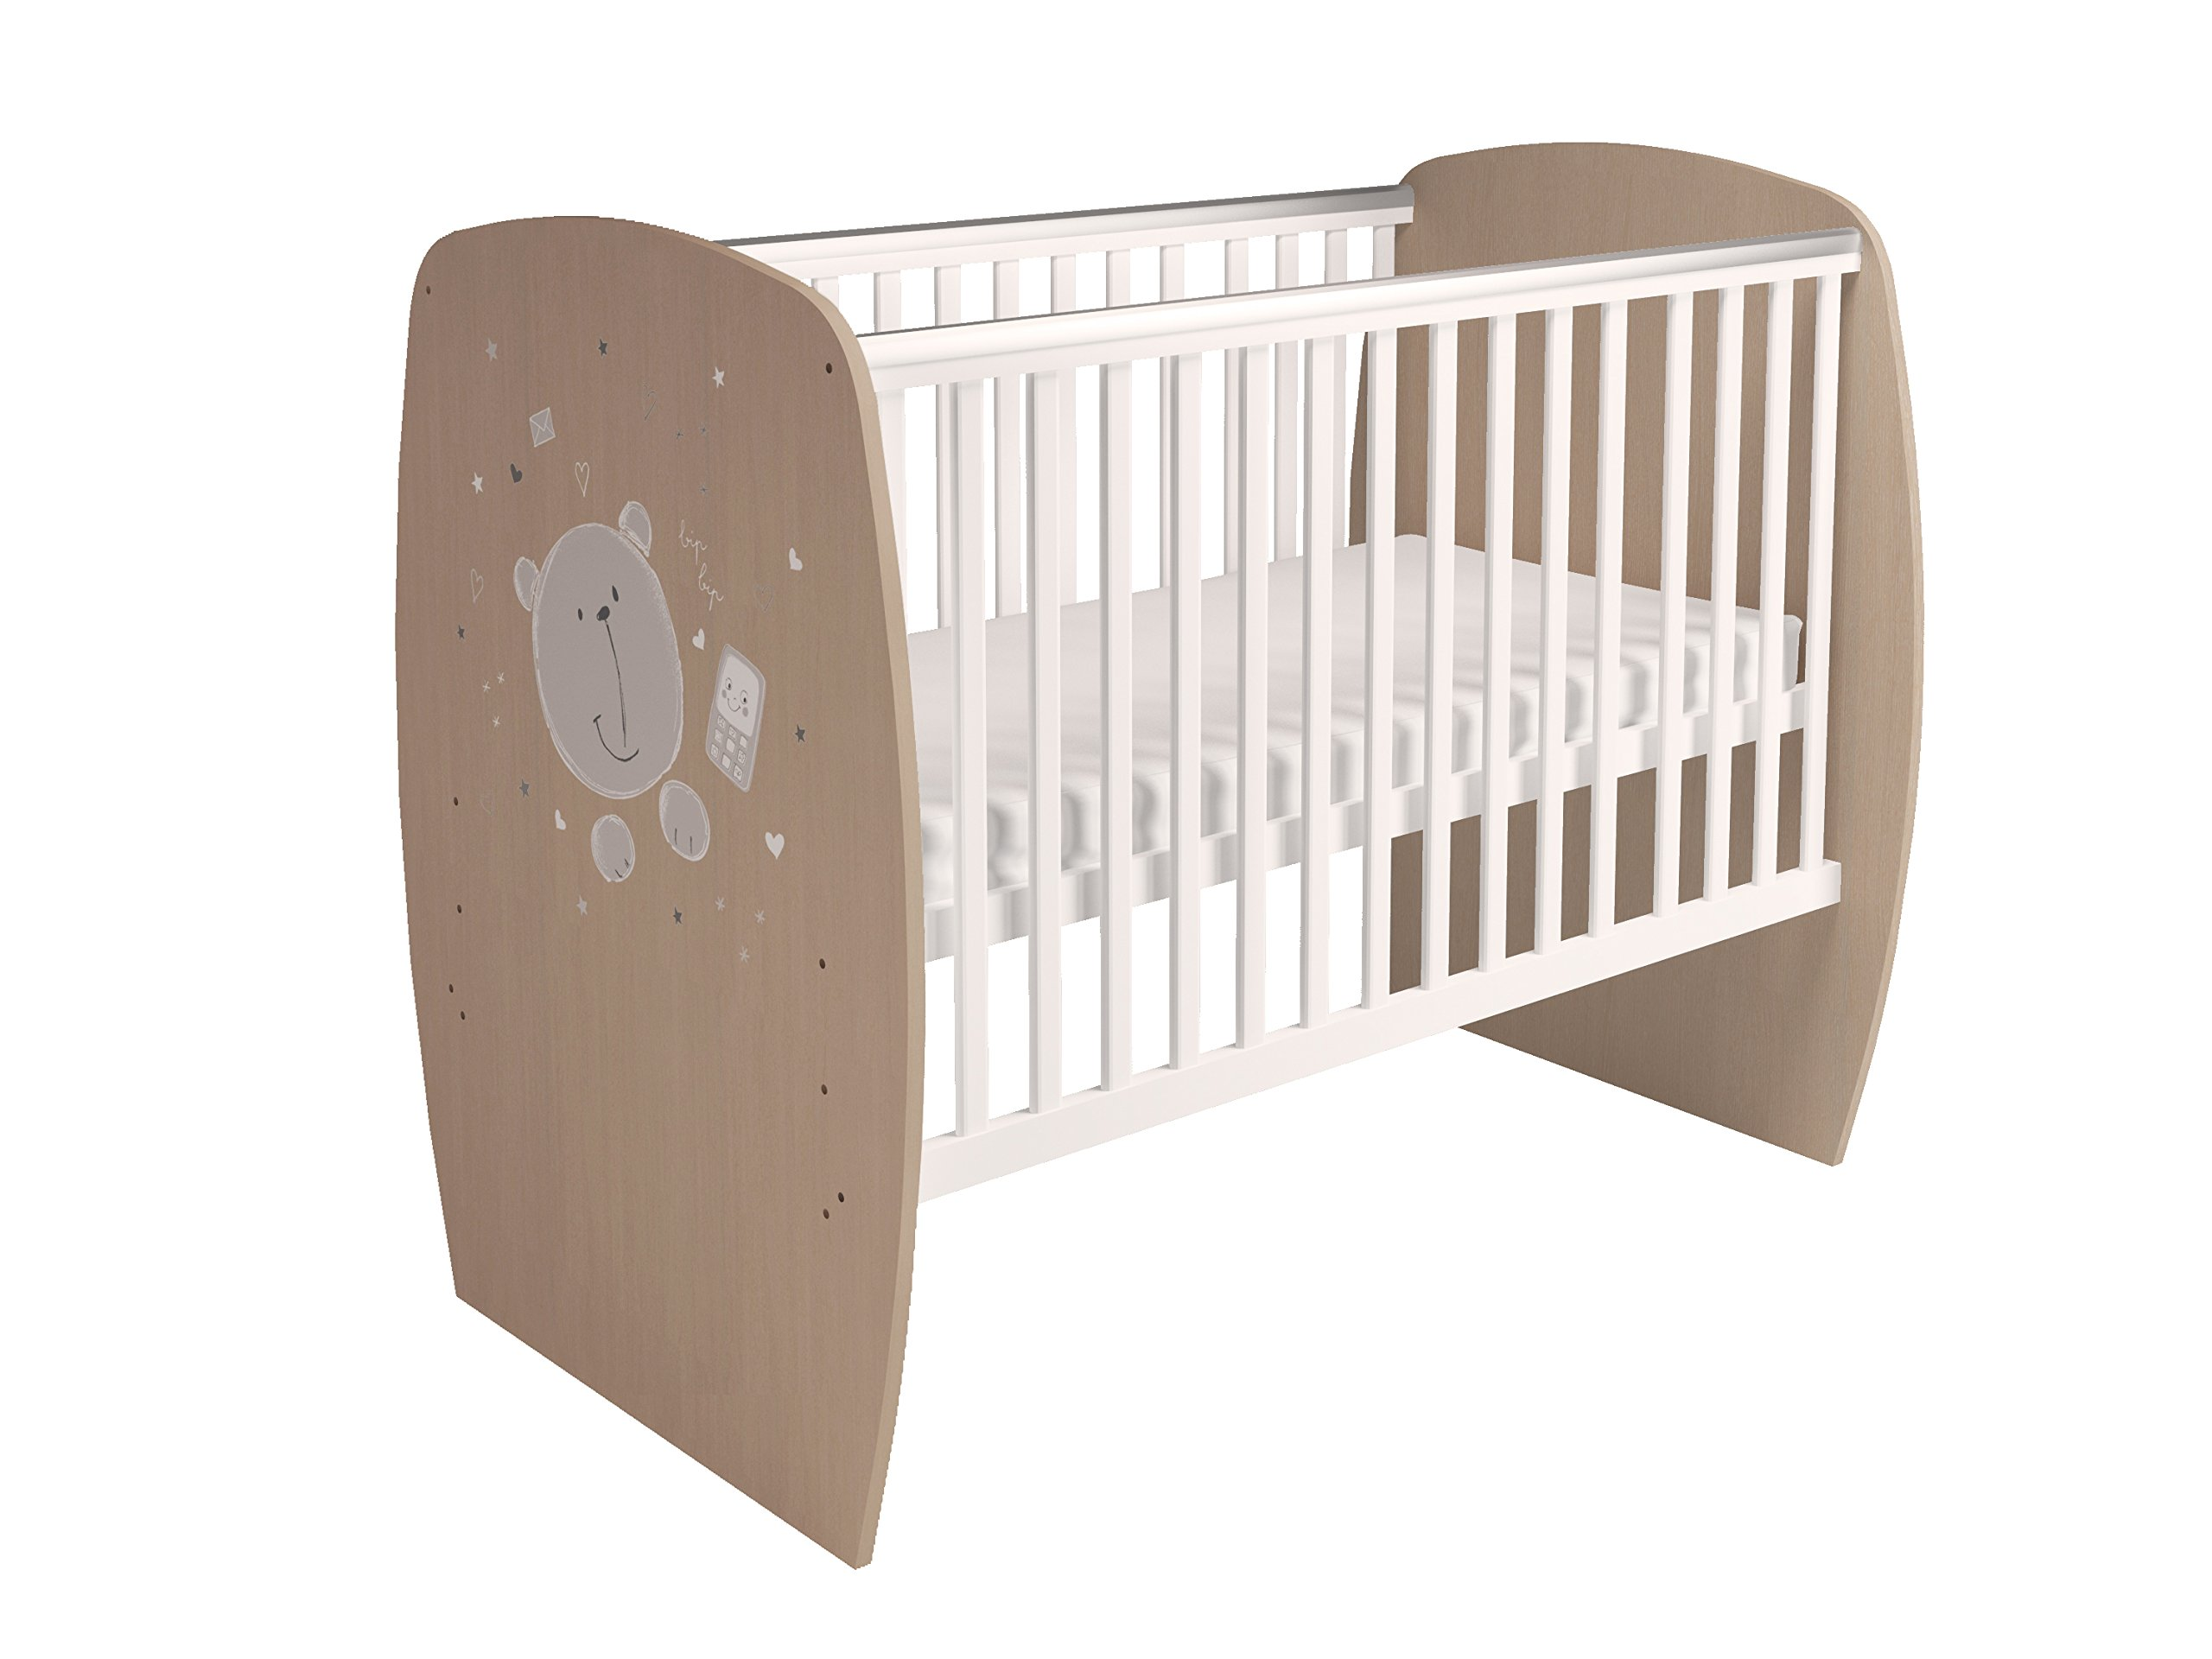 Polini Kids 0001527.62 French 700 Teddy Design Baby Cot, White-Pastel Oak Polini Kids 3 heights of the slatted bed base Protective PVC rails and soft-cornered bed sides Available with and without a drawer 3